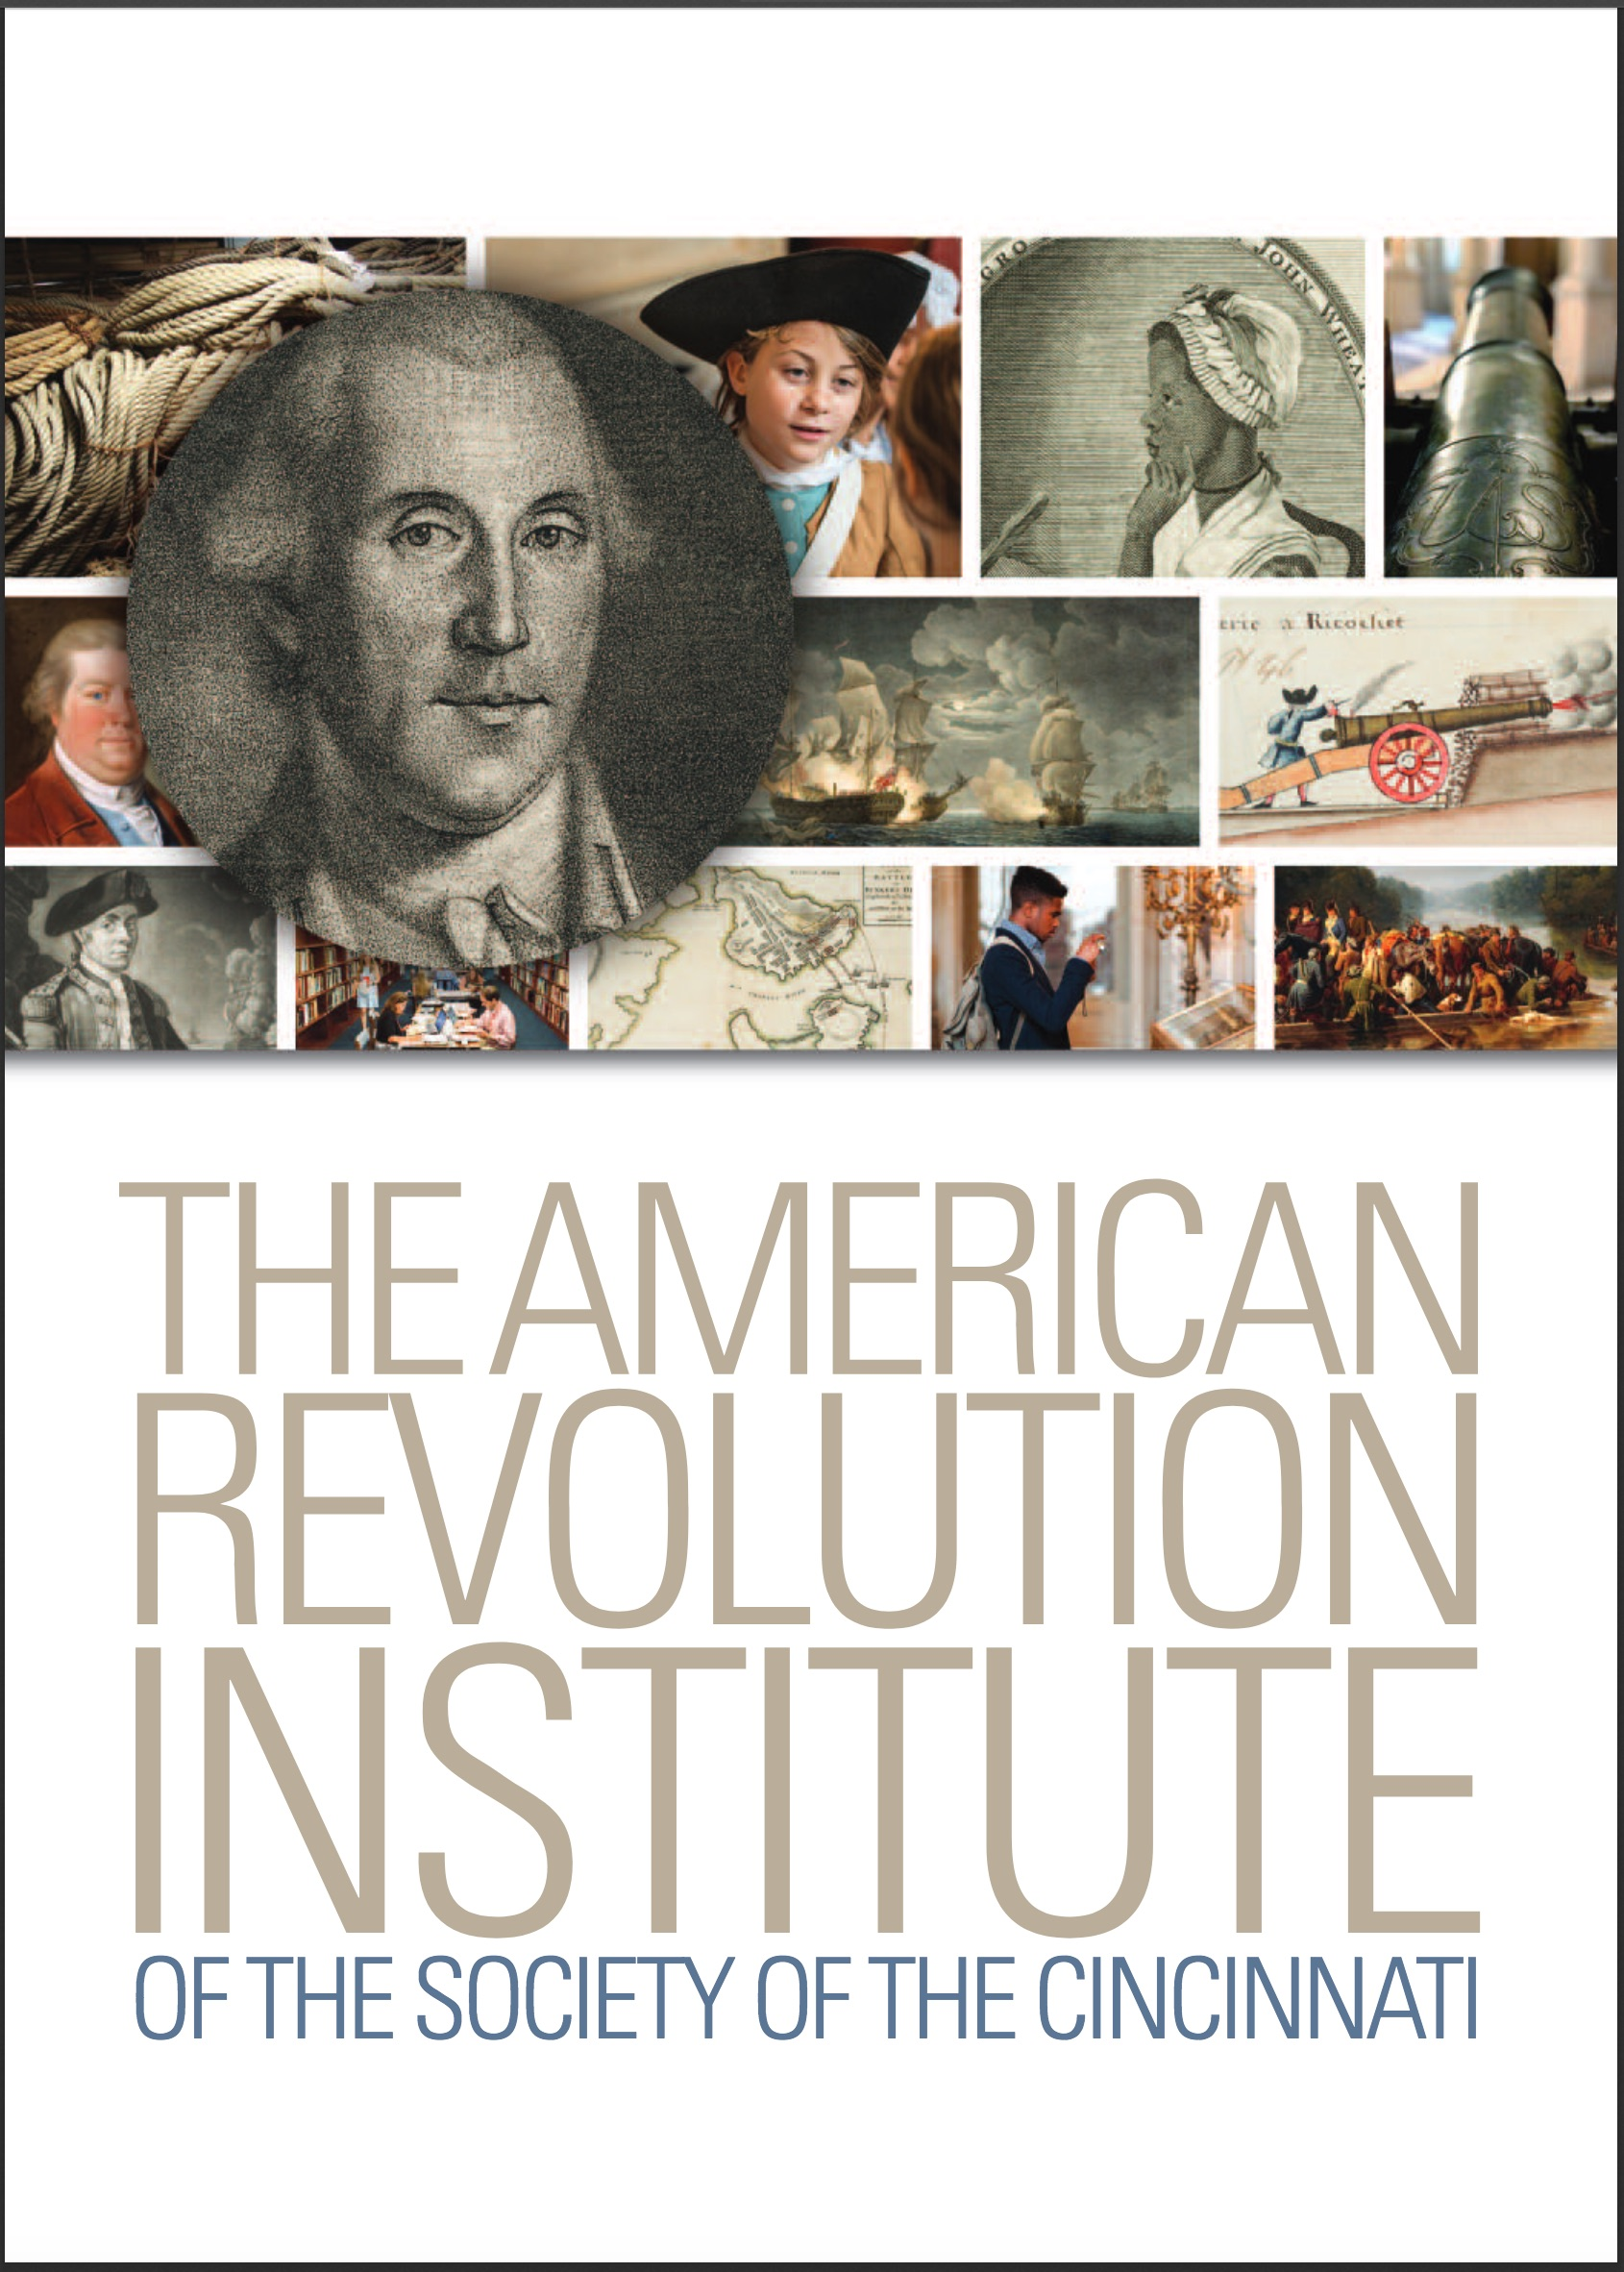 This is the cover of the overview of the American Revolution Institute, available here as our electronic publications.